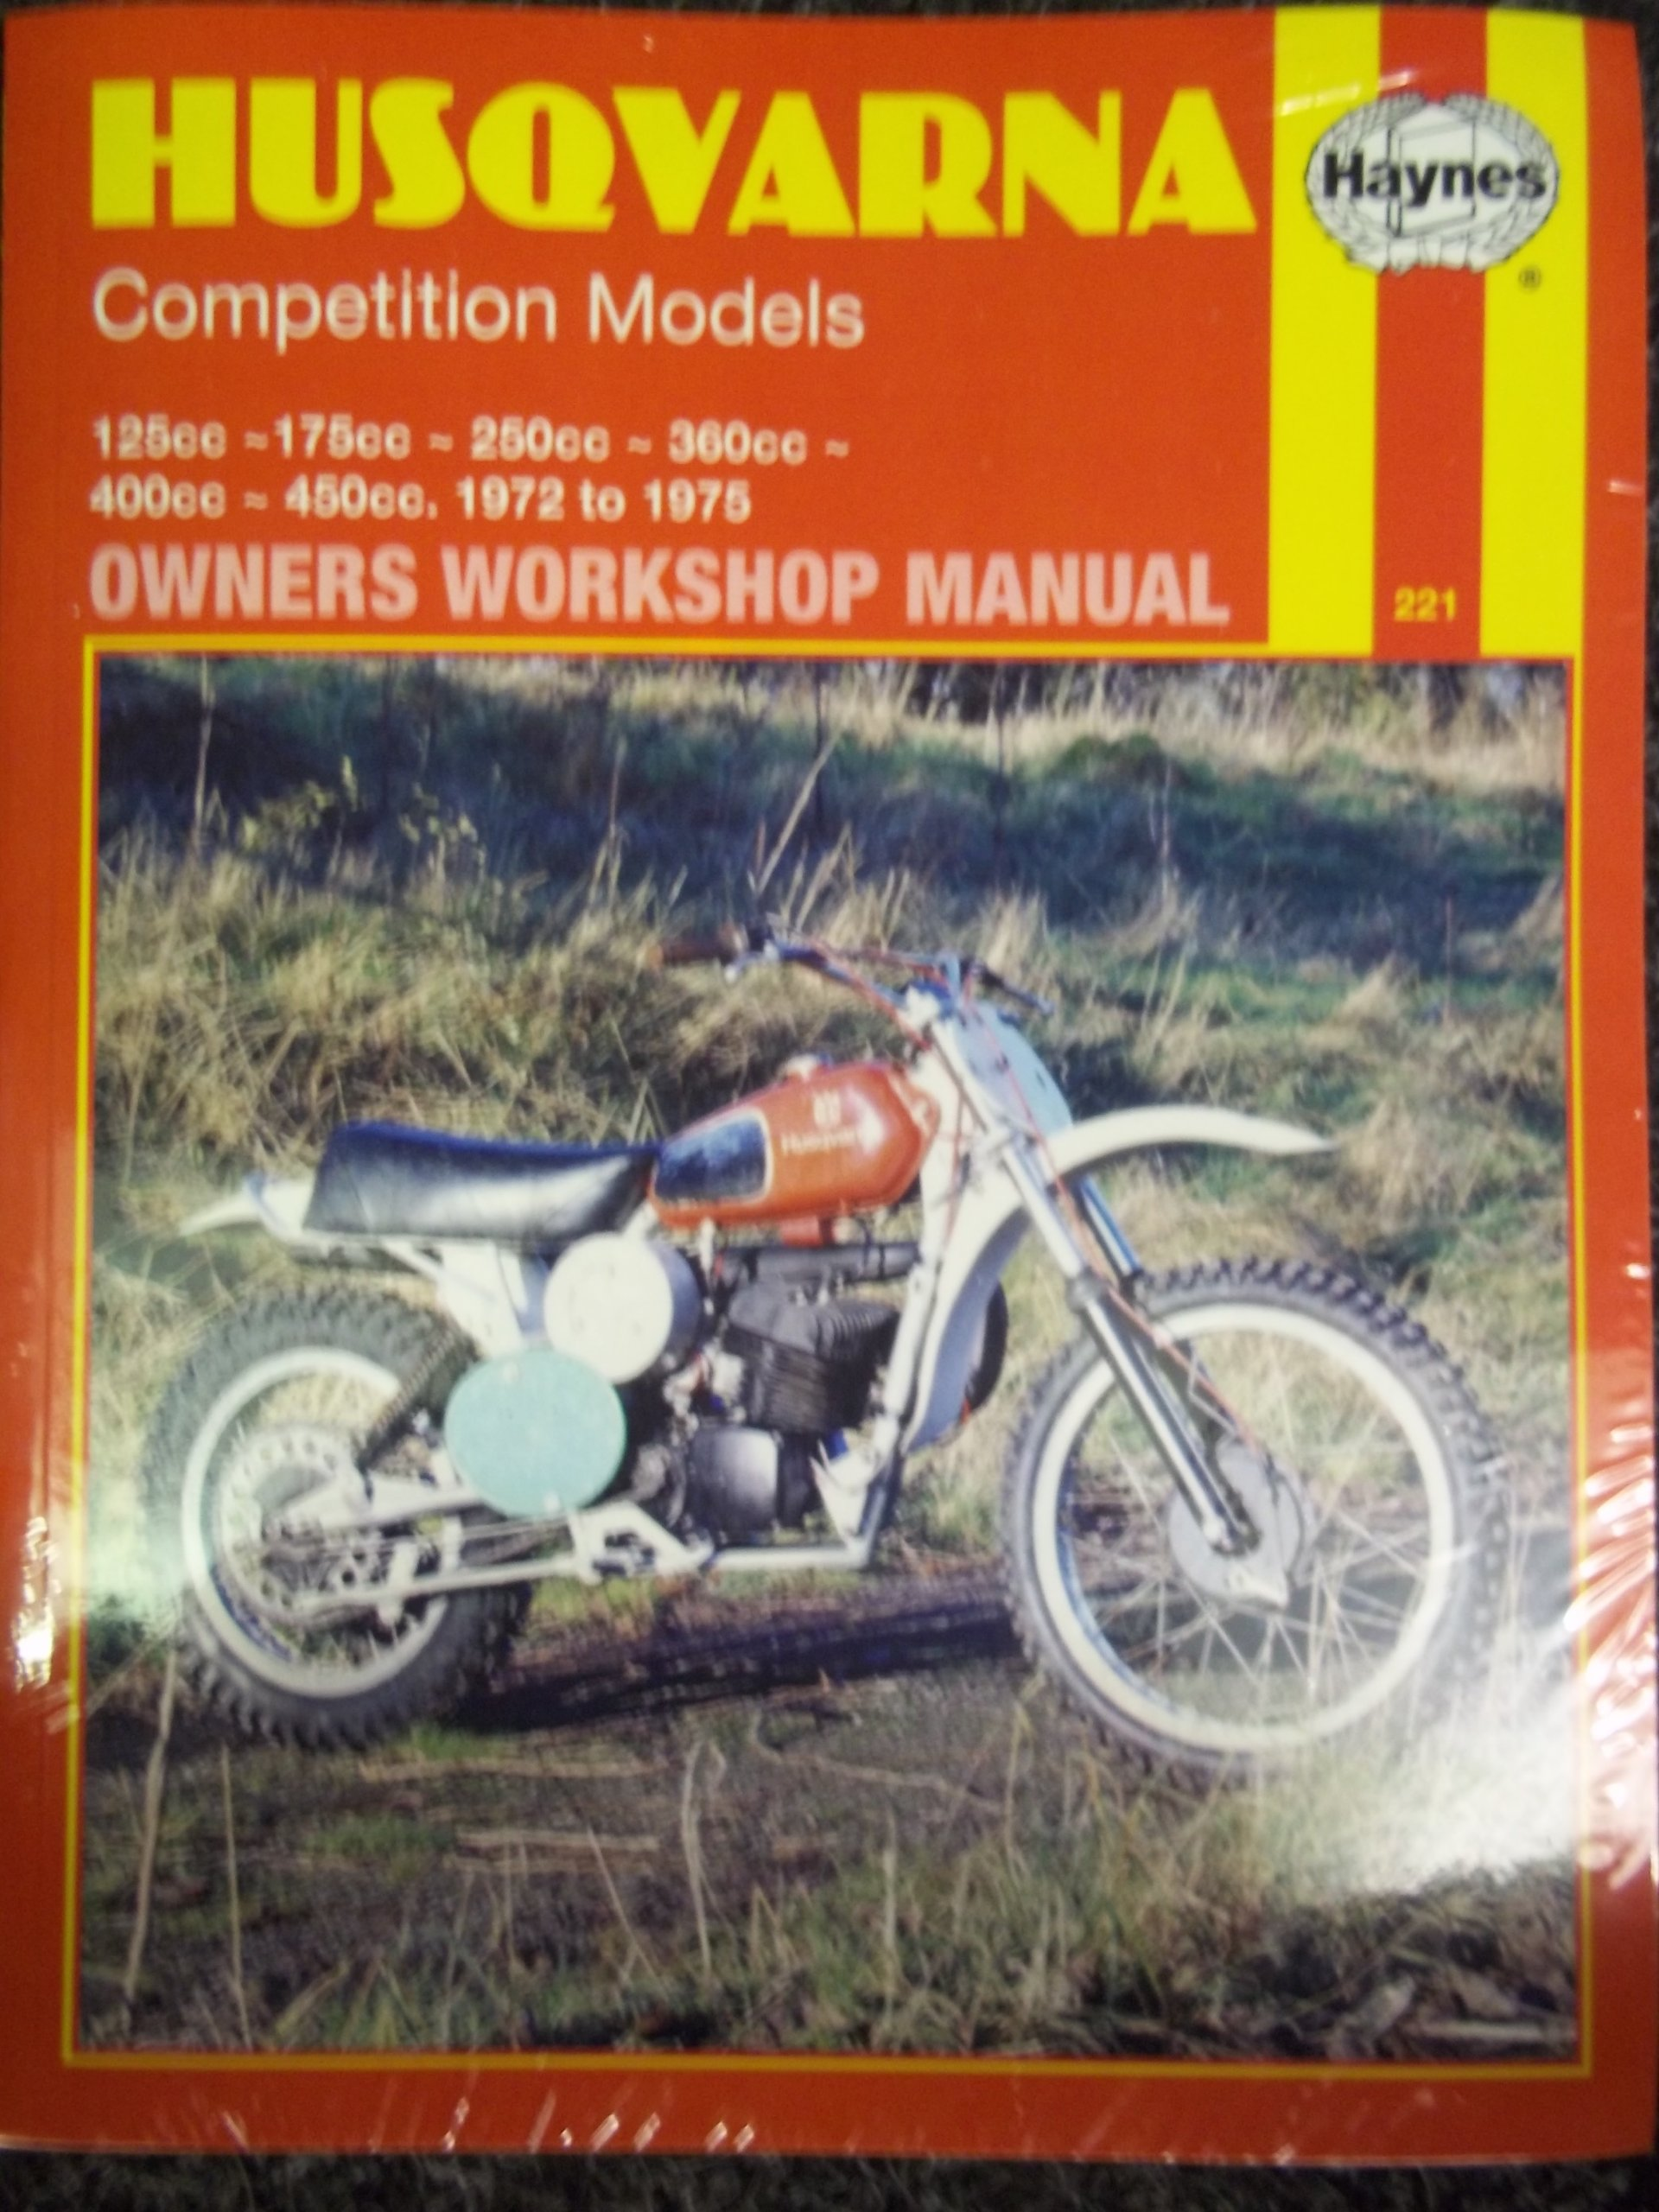 Husqvarna Competition Models (Haynes owners workshop manuals for  motorcycles): Amazon.co.uk: Haynes Publishing: 9780856962219: Books